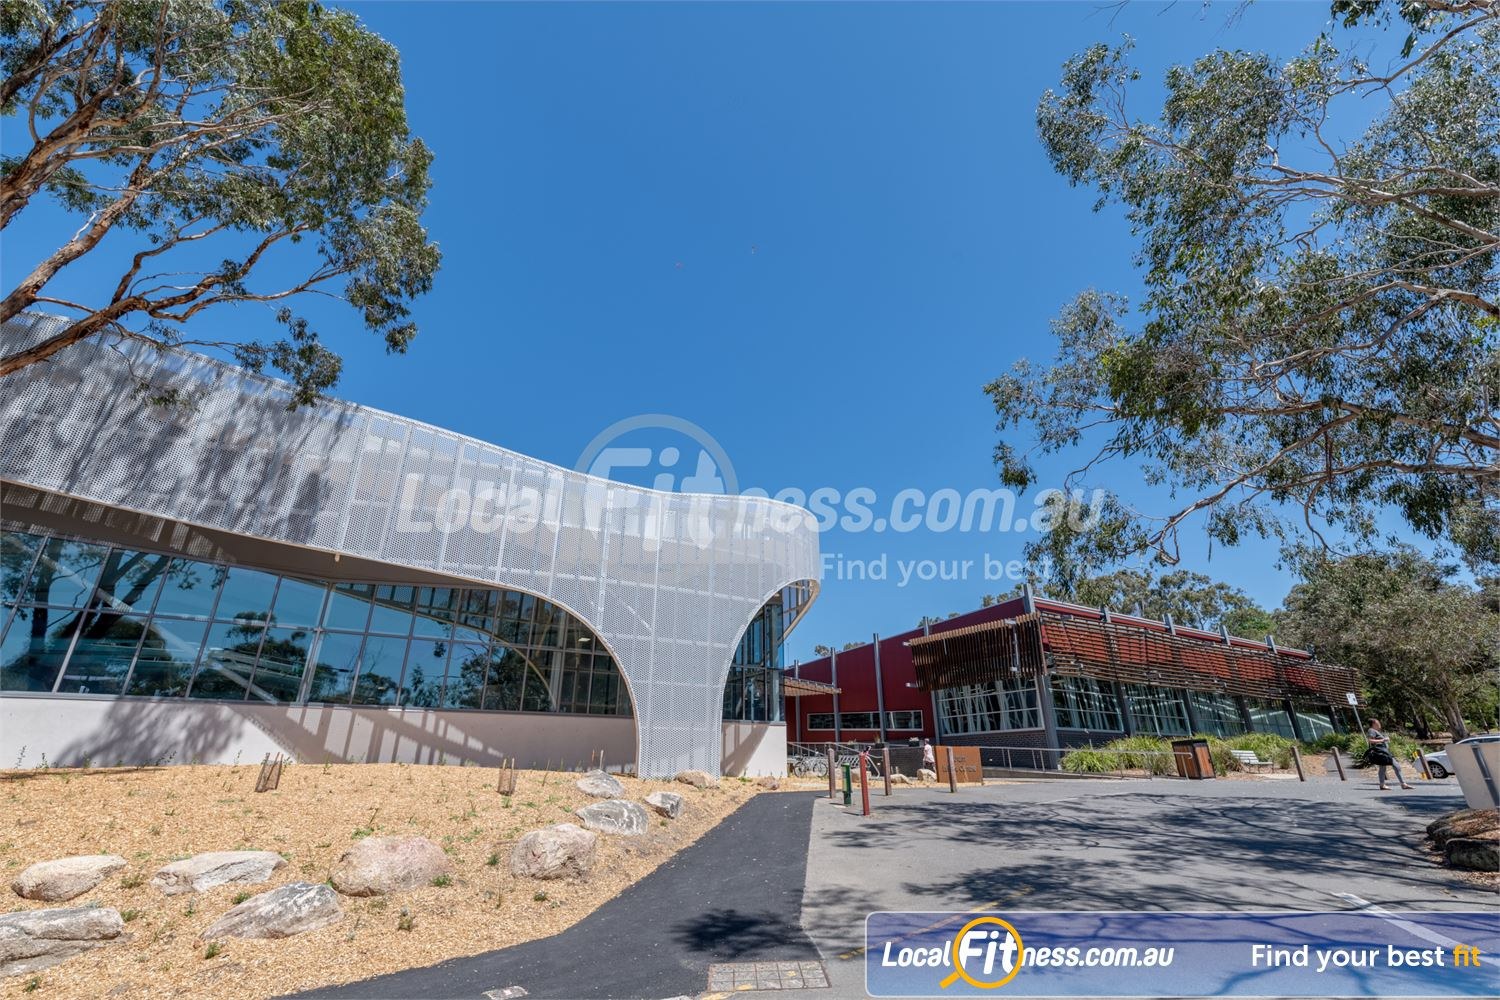 Eltham Leisure Centre front photo